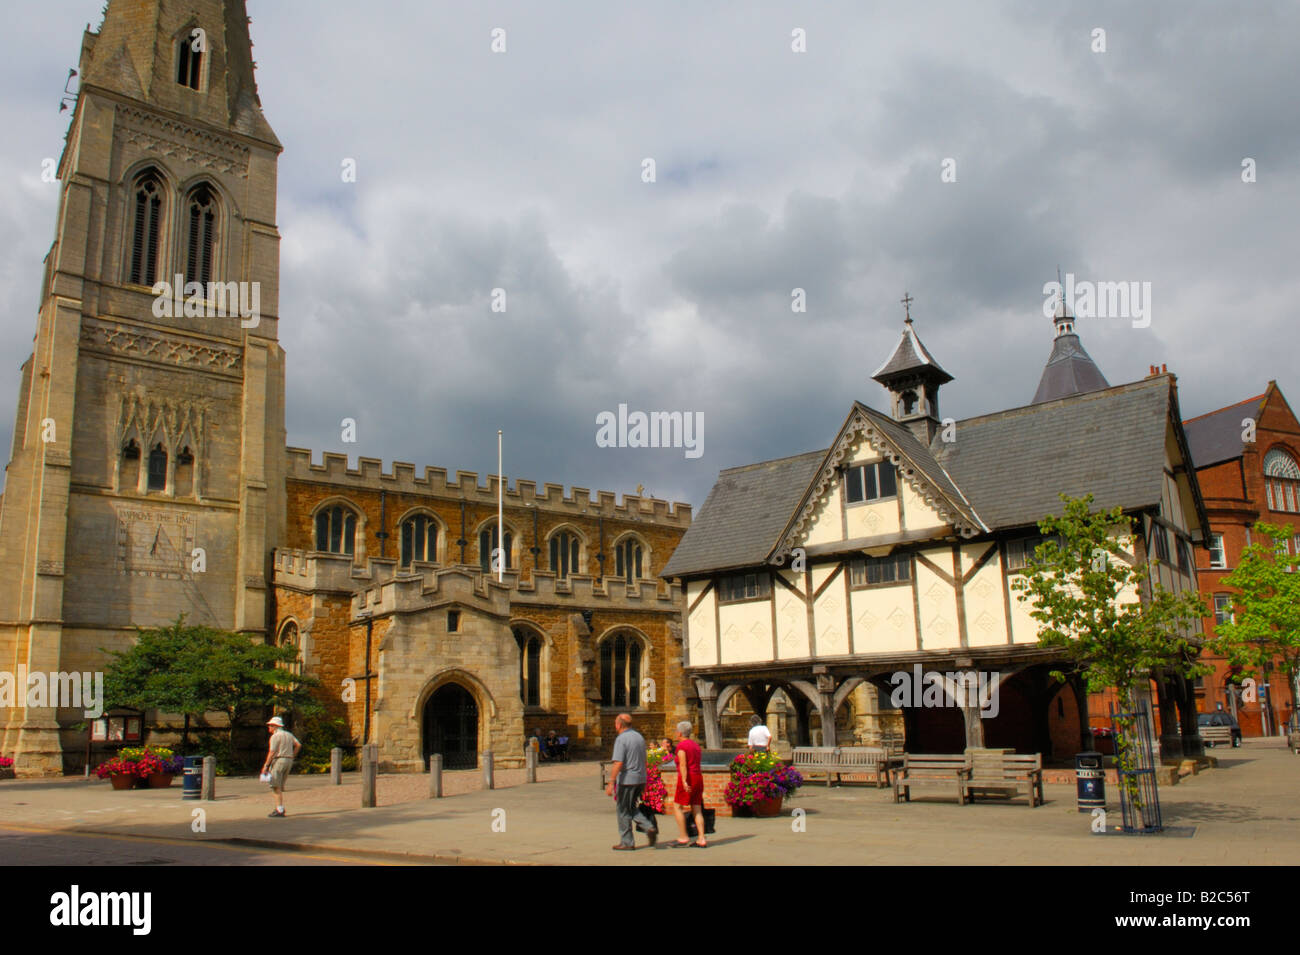 St Dionysius Church and the Old Grammar School in Market Harborough Leicestershire England - Stock Image